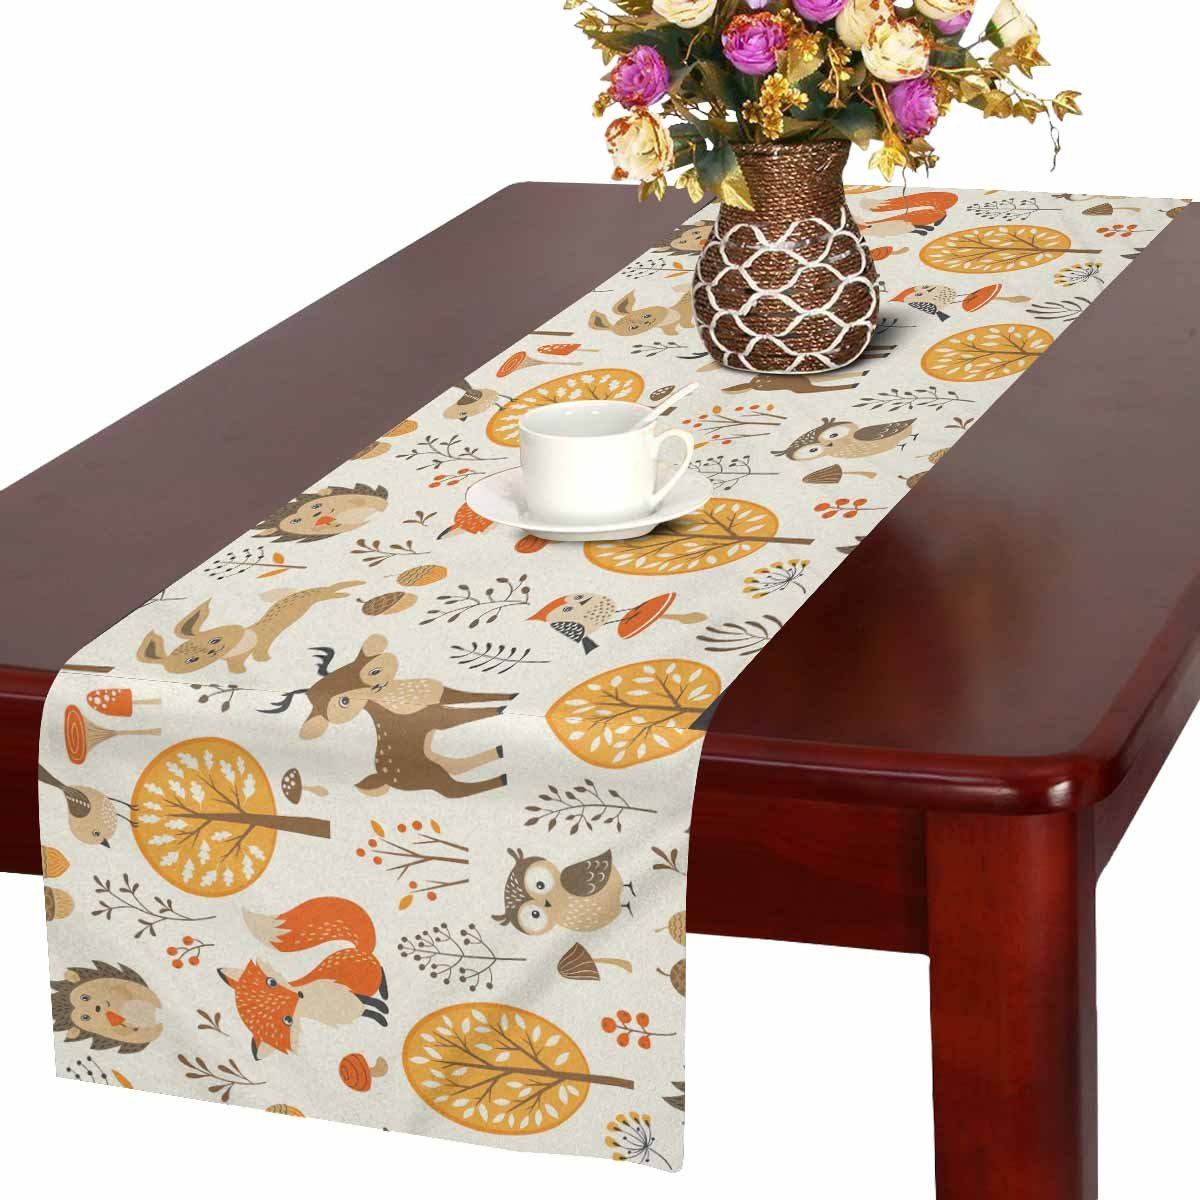 InterestPrint Autumn Forest Table Runner Home Decor 16 X 72 Inch,Cute Animal Table Cloth Runner for Wedding Party Banquet Decoration